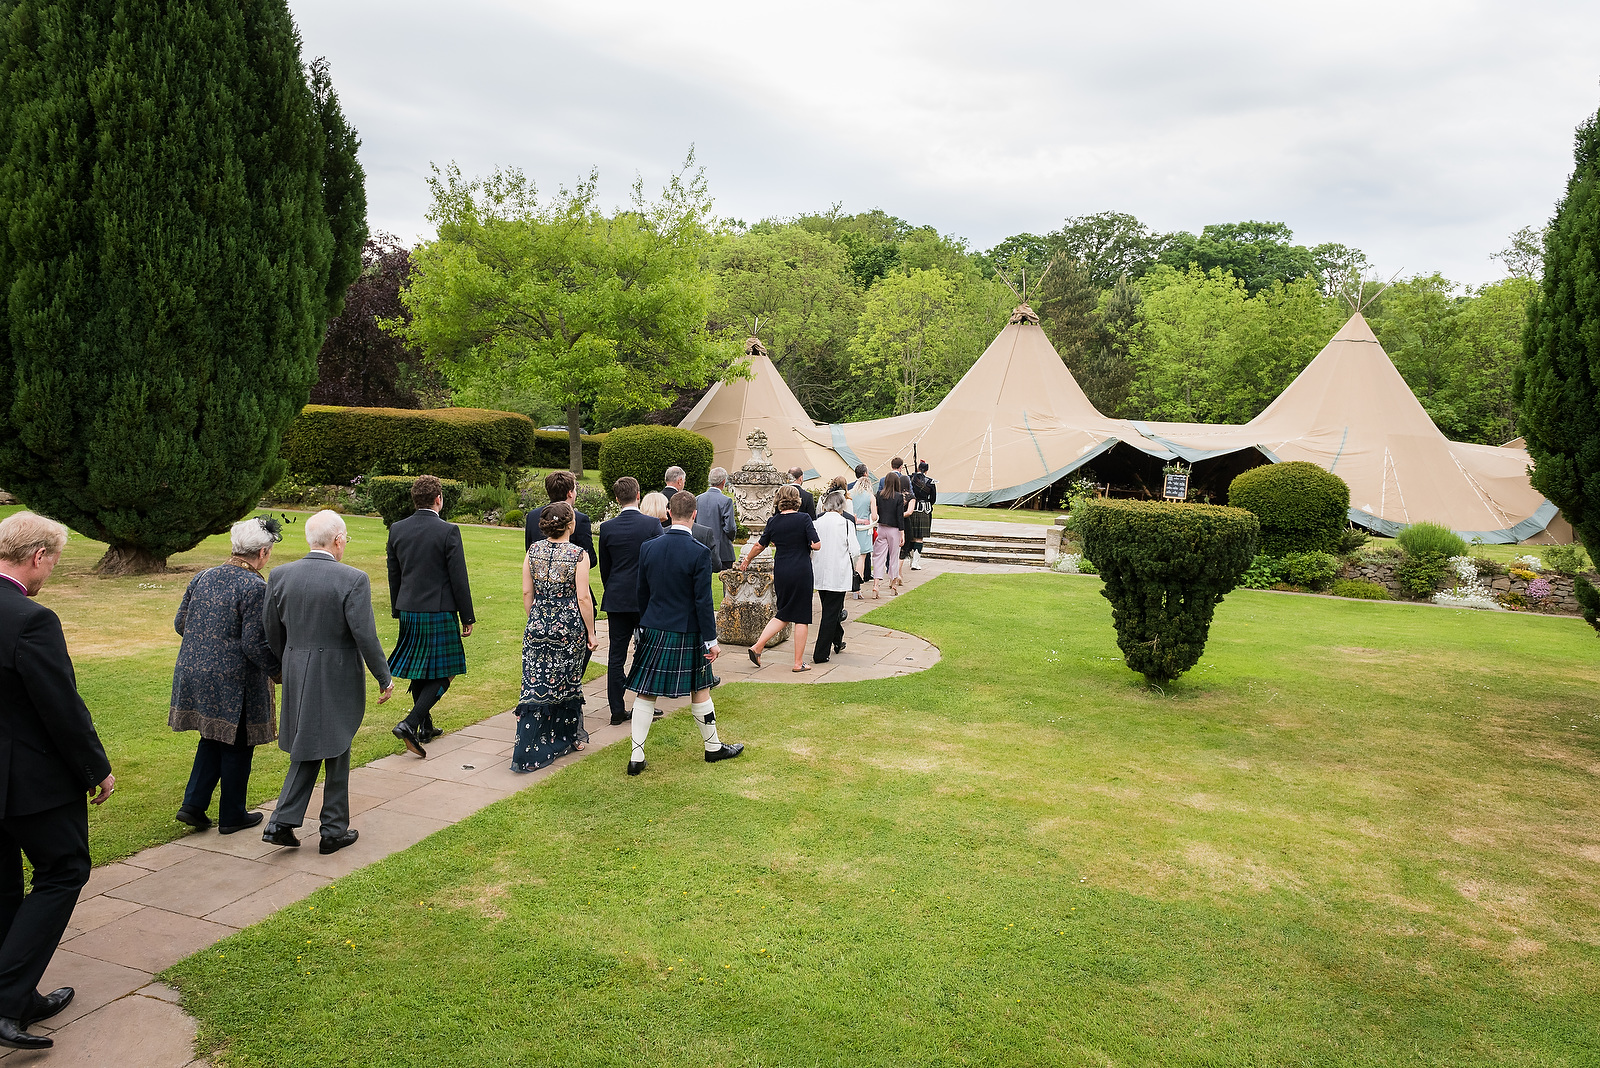 Harriet & William's PapaKåta Teepee Wedding at Gilmerton House captured by First Light Photography- Wedding Guests